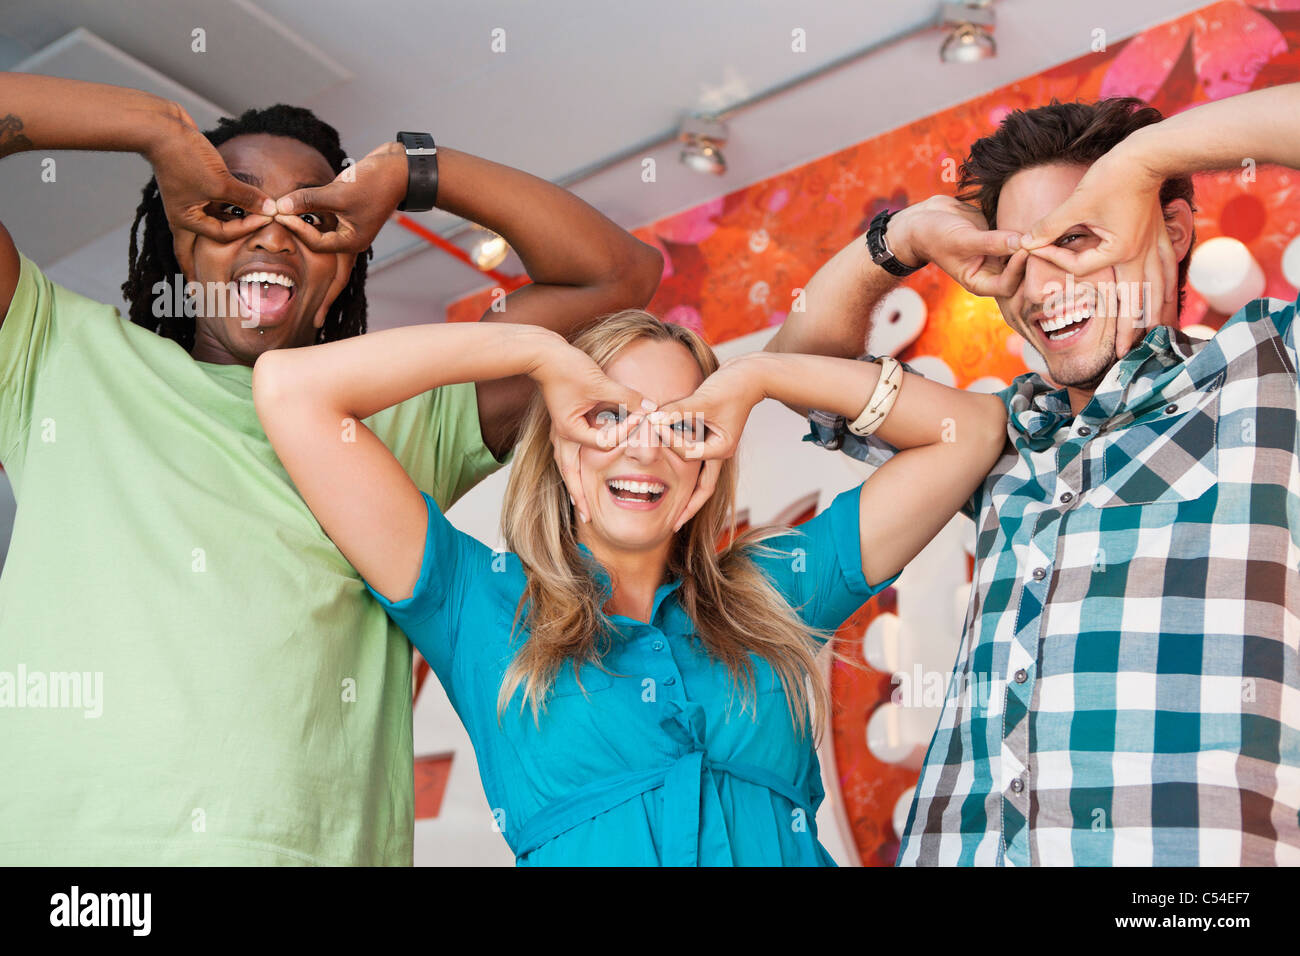 Friends pretending to wear glasses at a bar - Stock Image